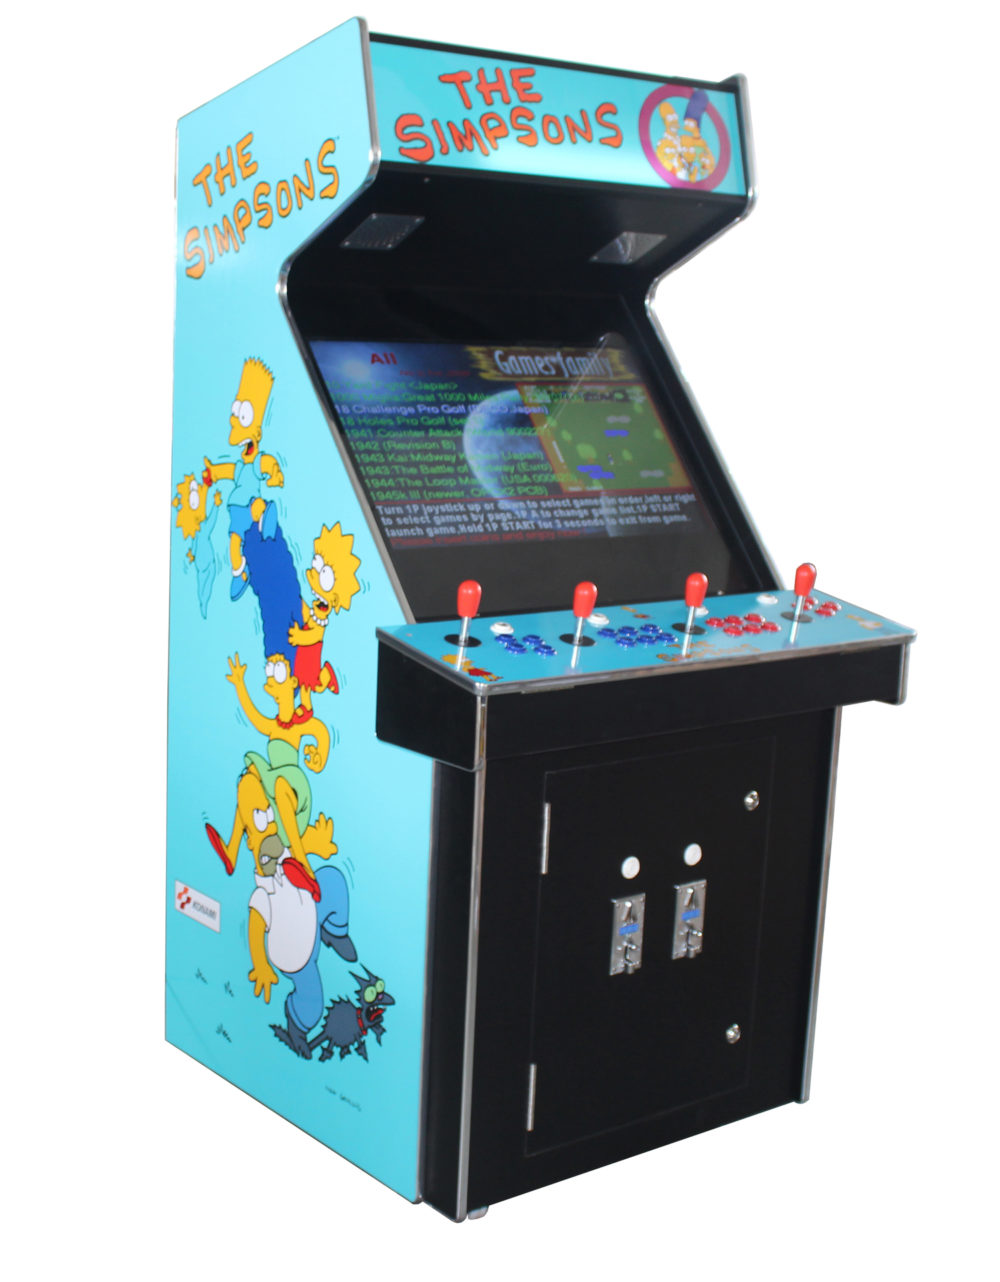 Arcade Rewind 3500 in 1 Upright Arcade Machine With Simpsons for sale